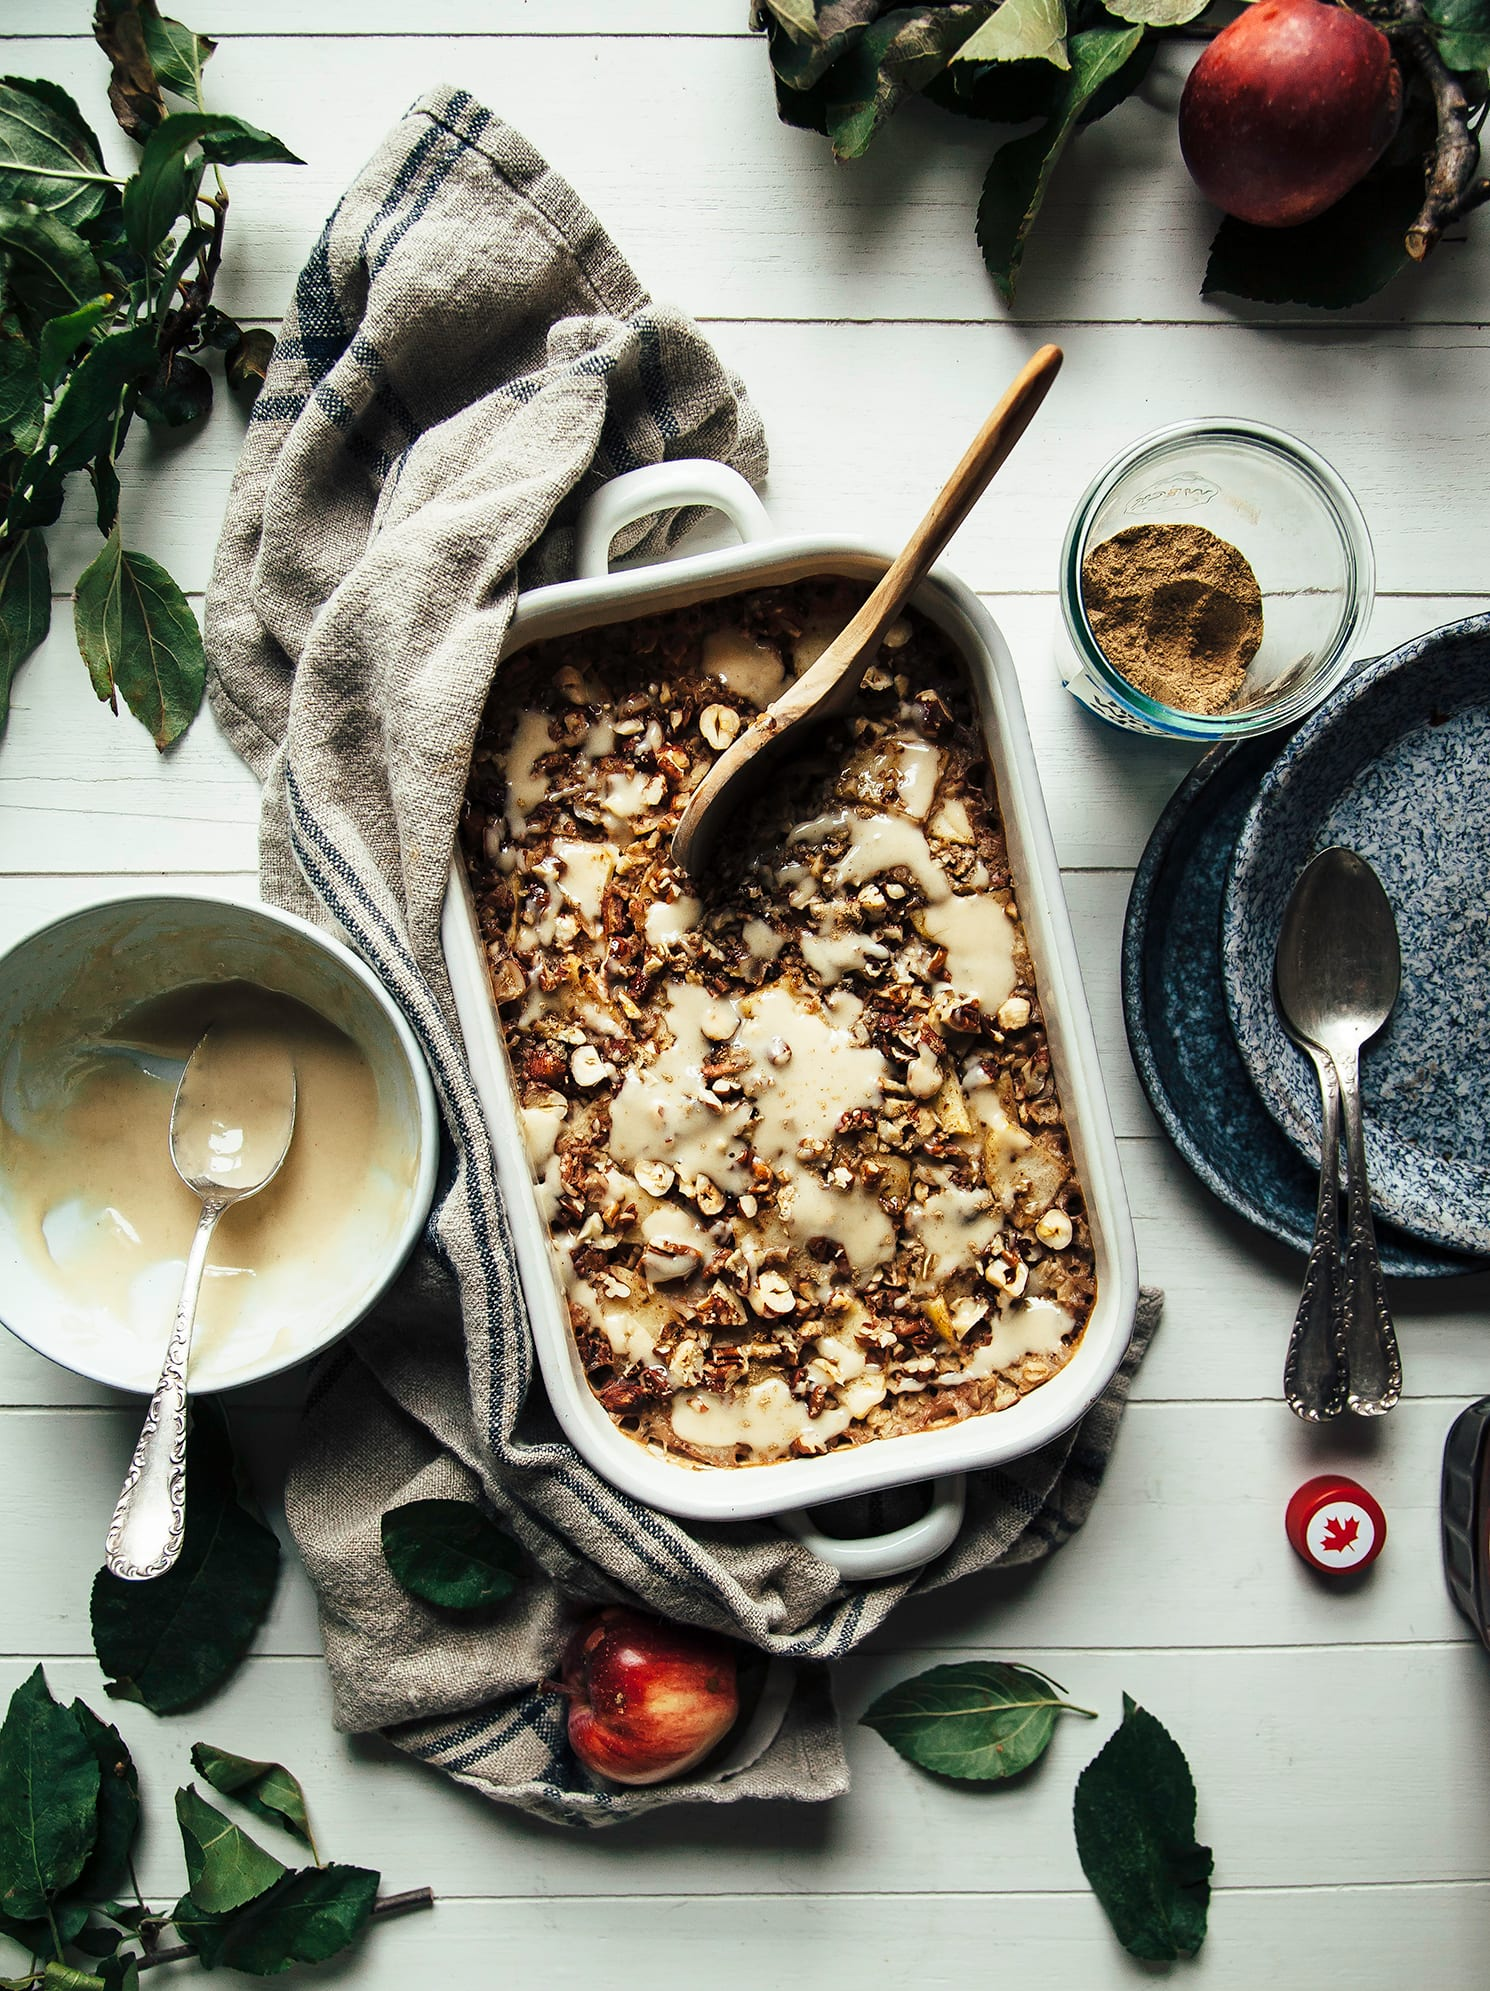 An overhead shot of baked oatmeal that is topped with cooked apples and nuts. A bowl of creamy sauce is seen to the side.